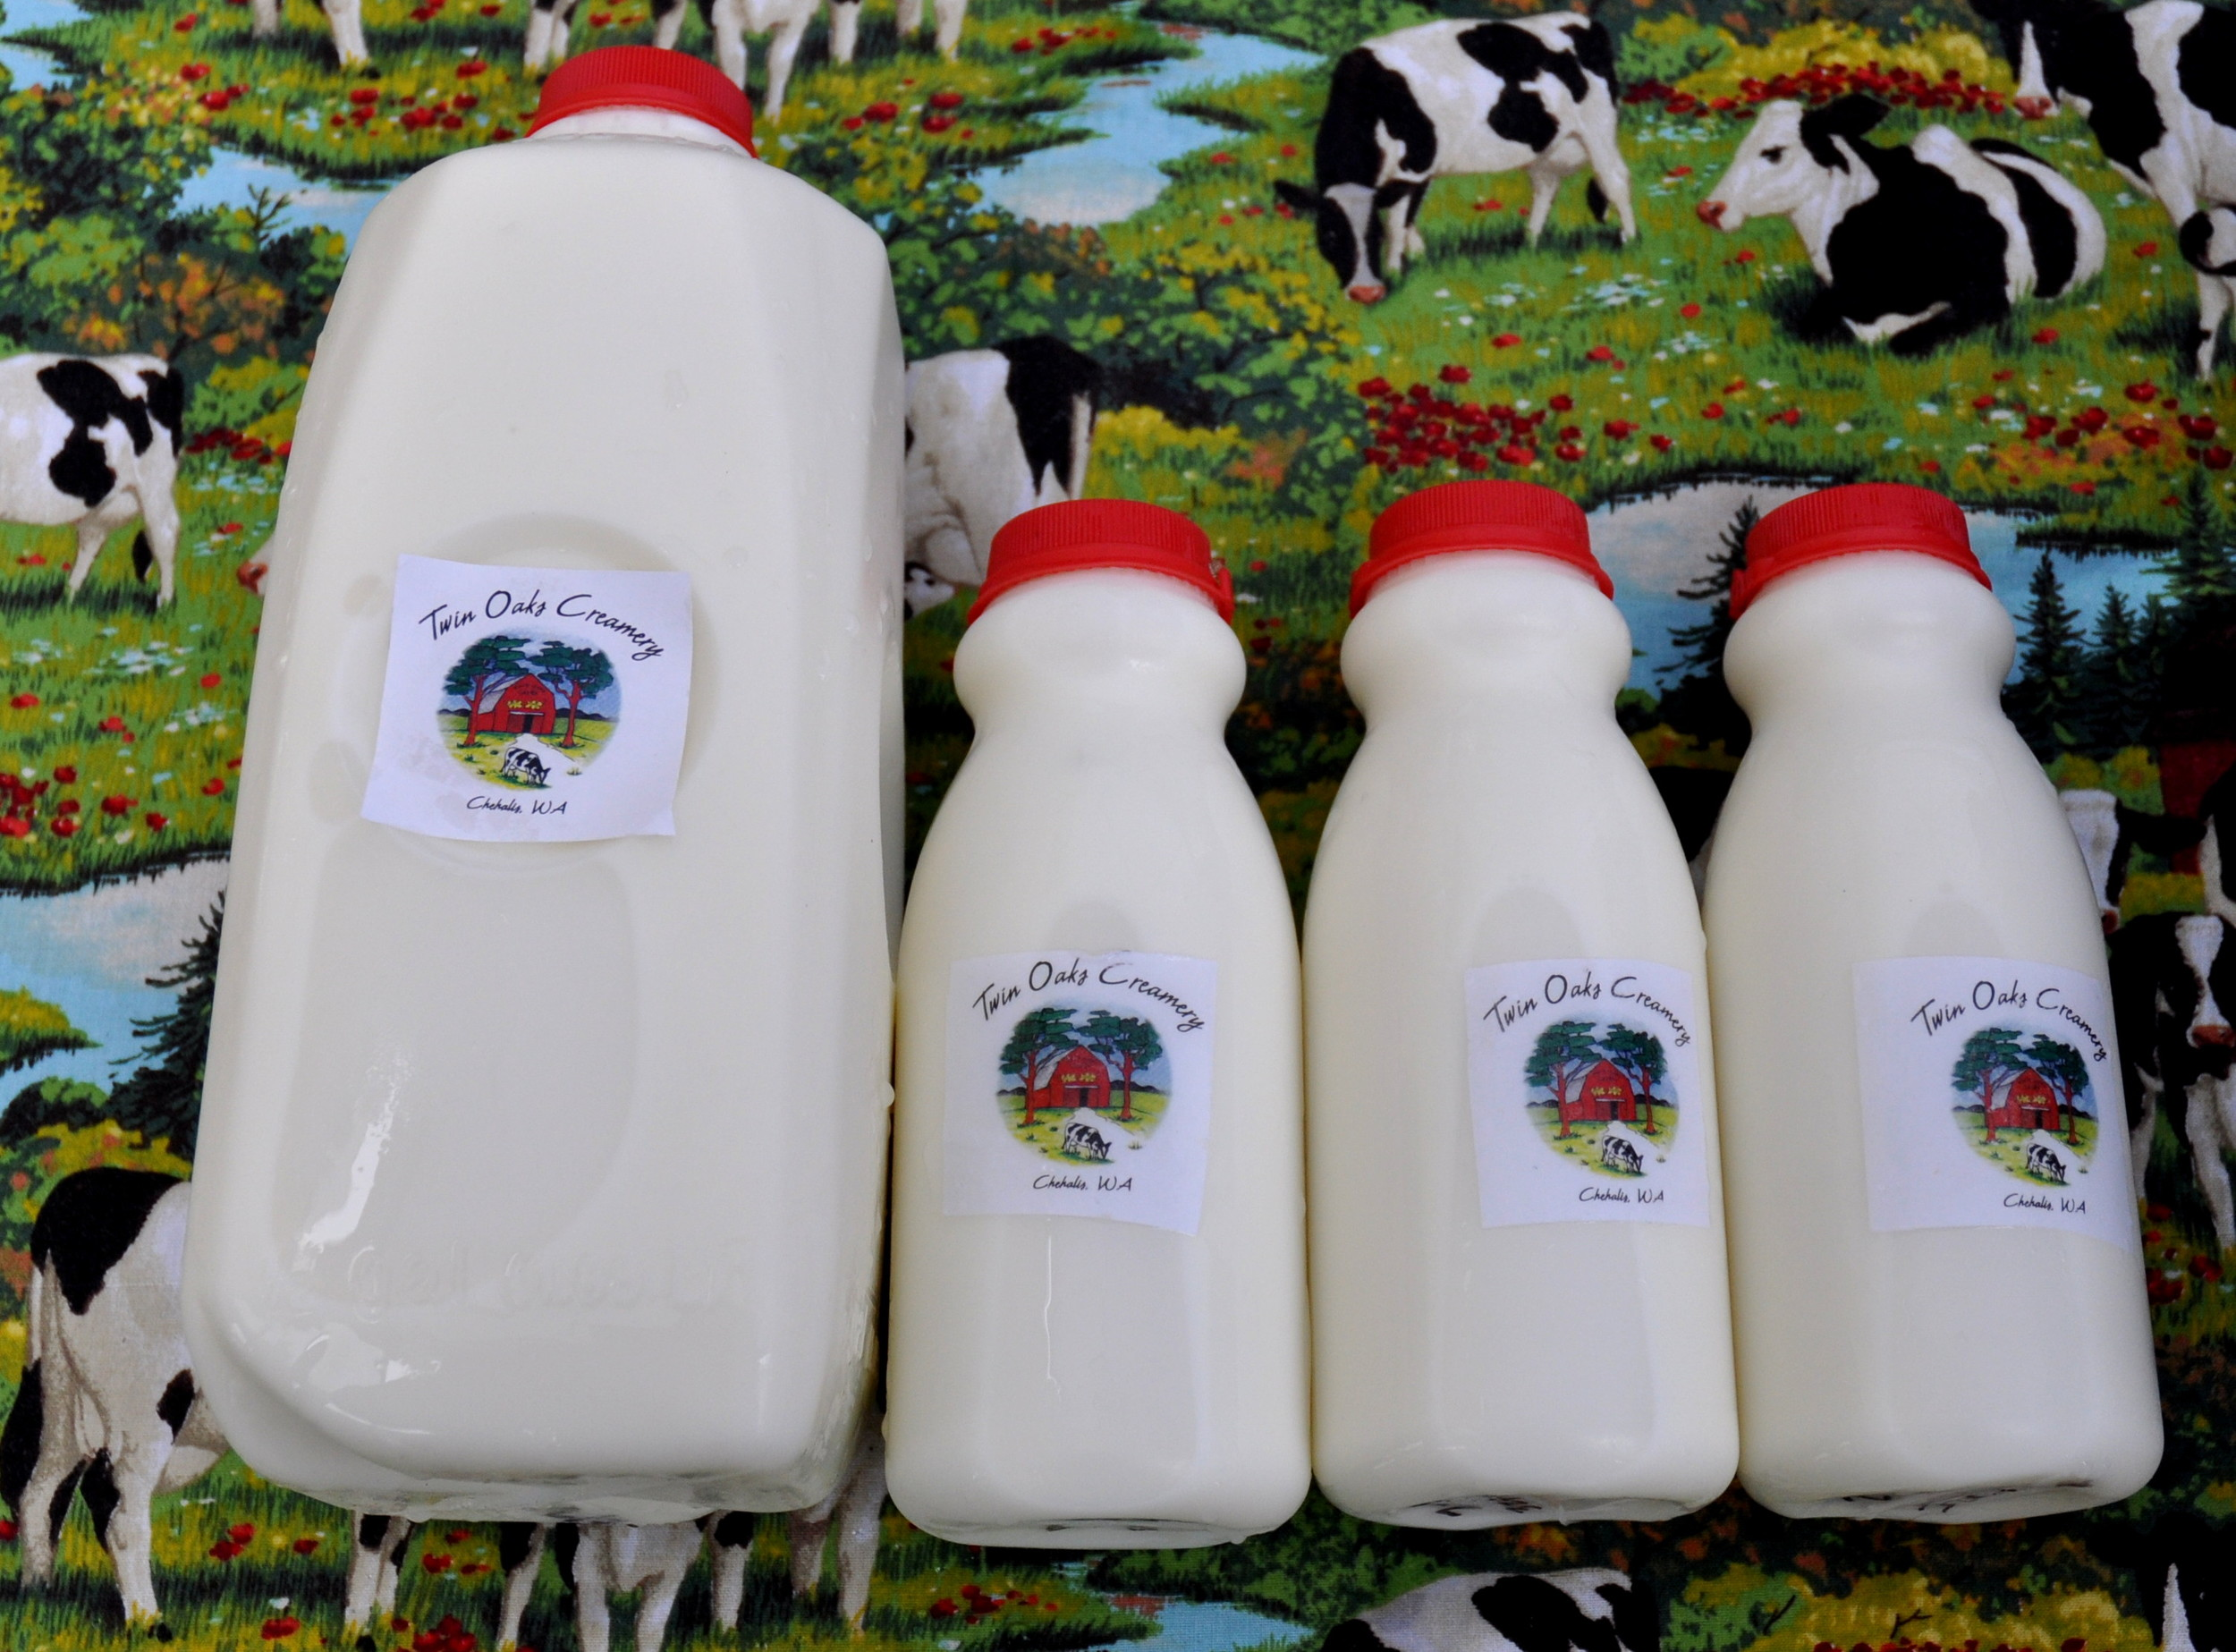 Farm-fresh bottled cow and goat milk from Twin Oaks Creamery. Photo copyright 2013 by Zachary D. Lyons.